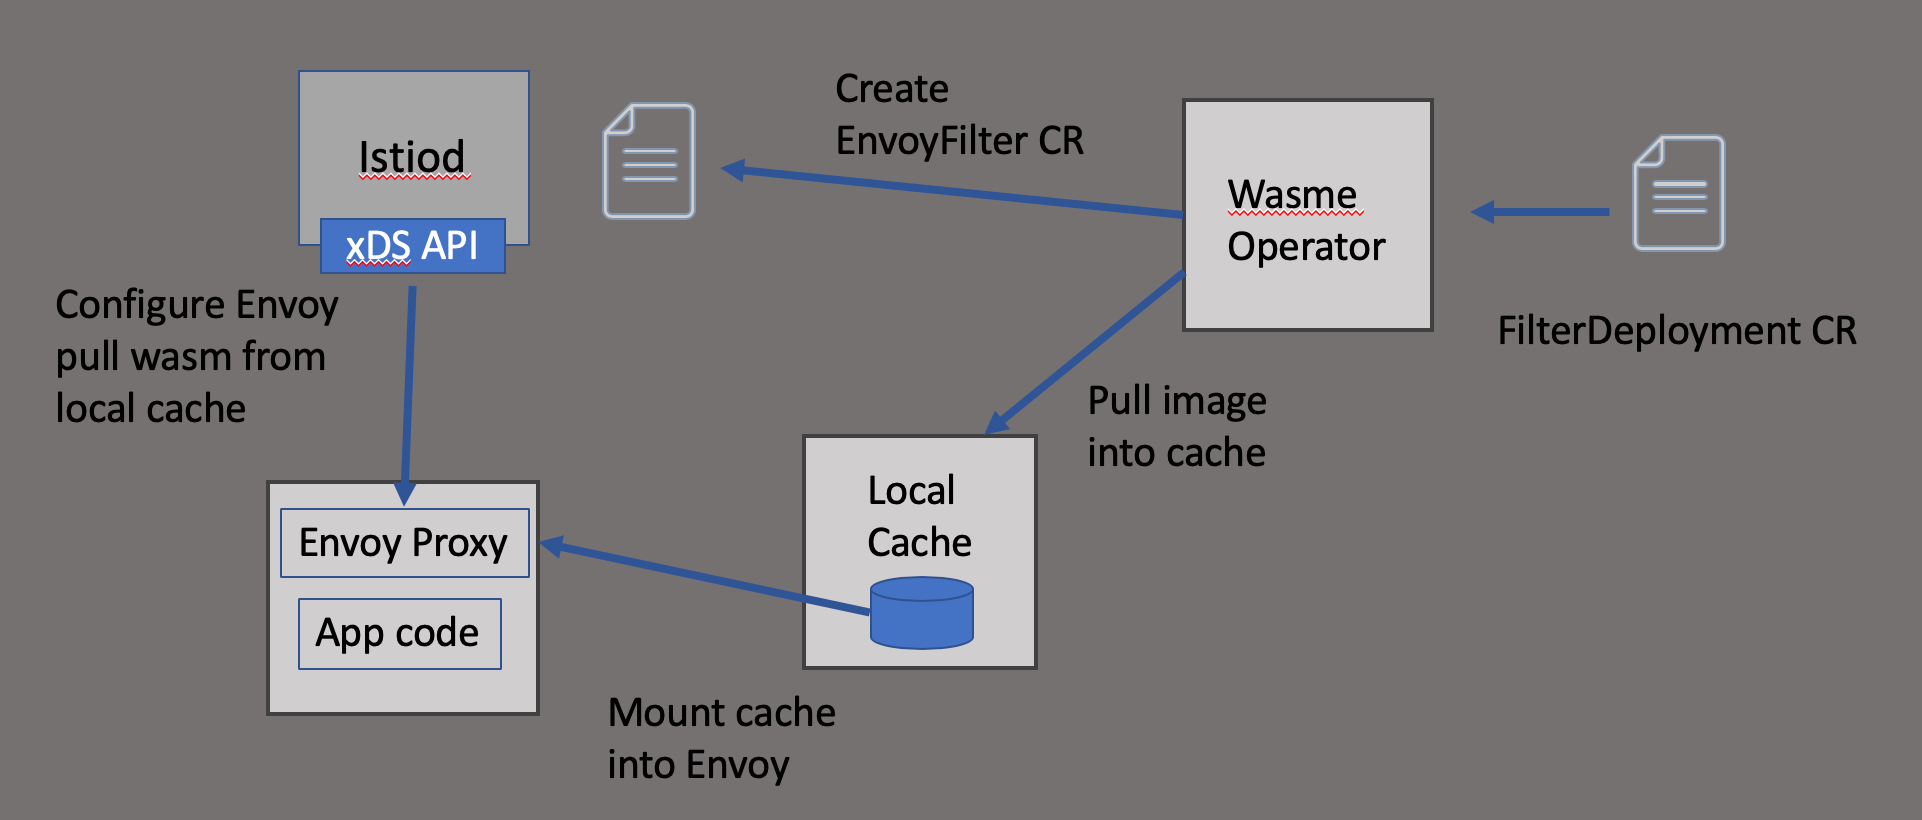 How the wasme operator works